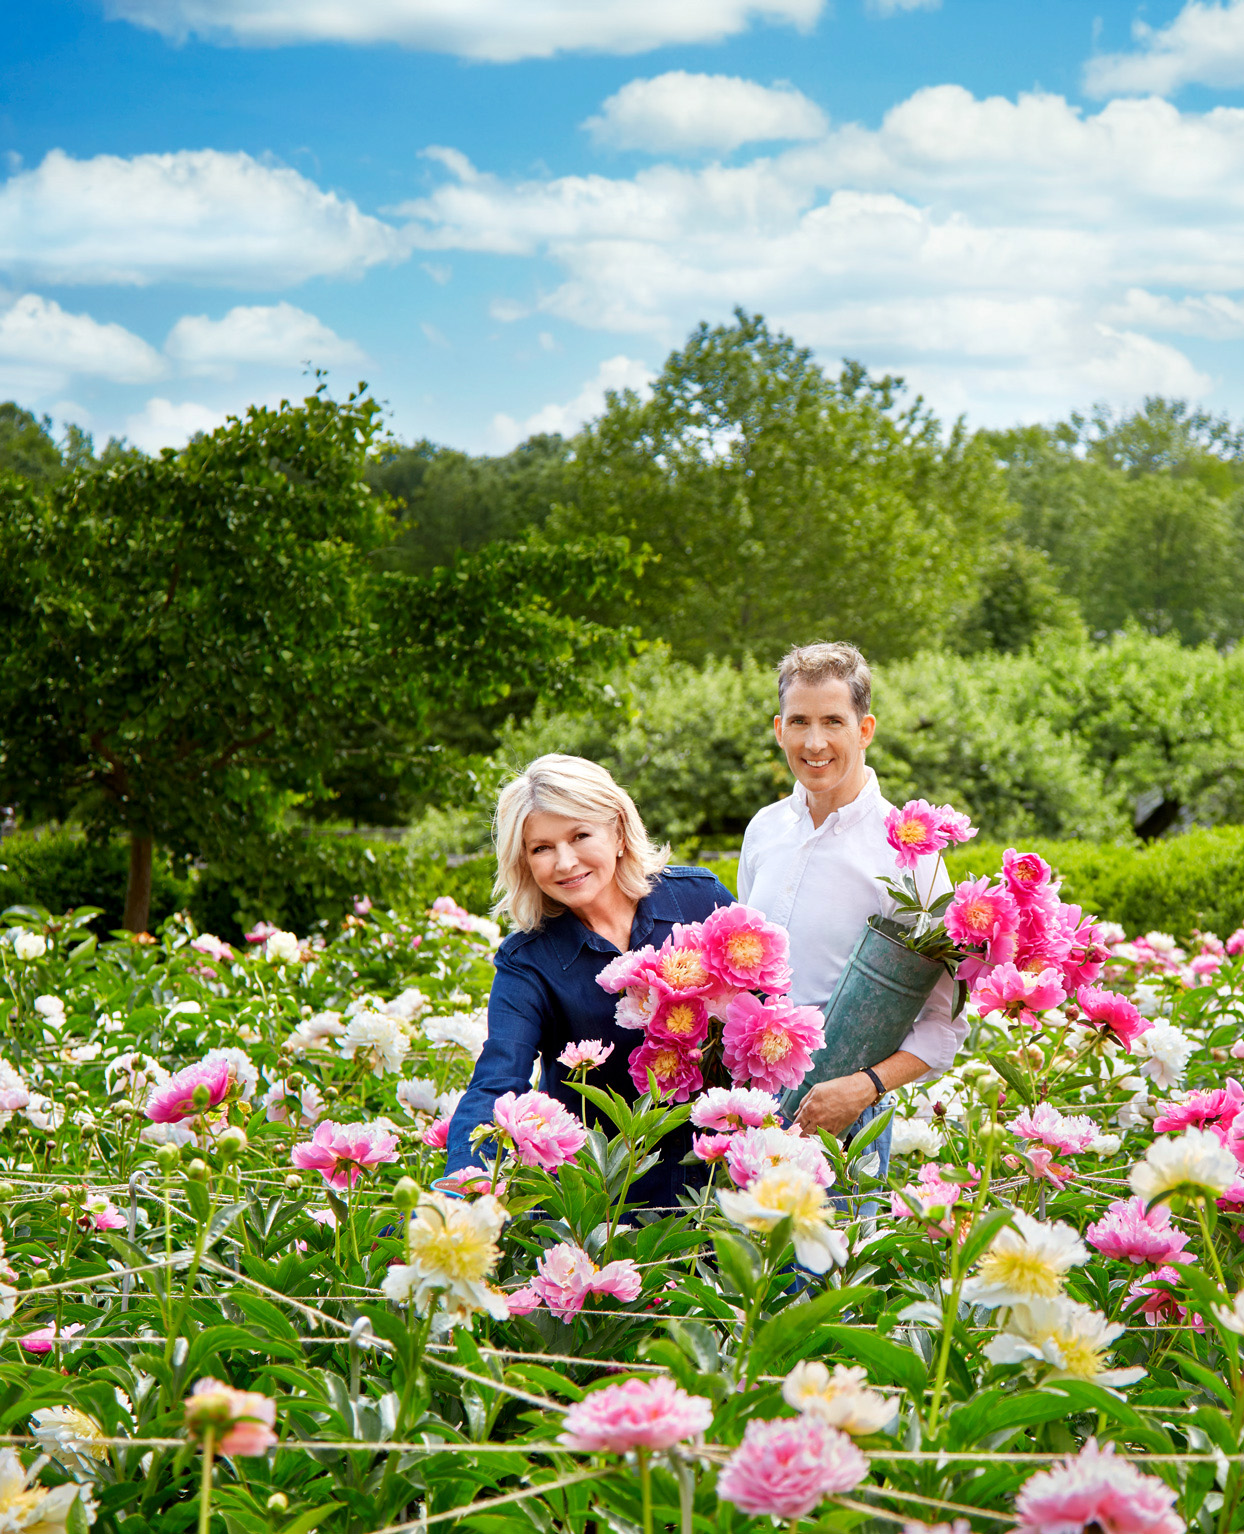 Cut Above Martha Stewart and Kevin Sharkey in a field of flowers